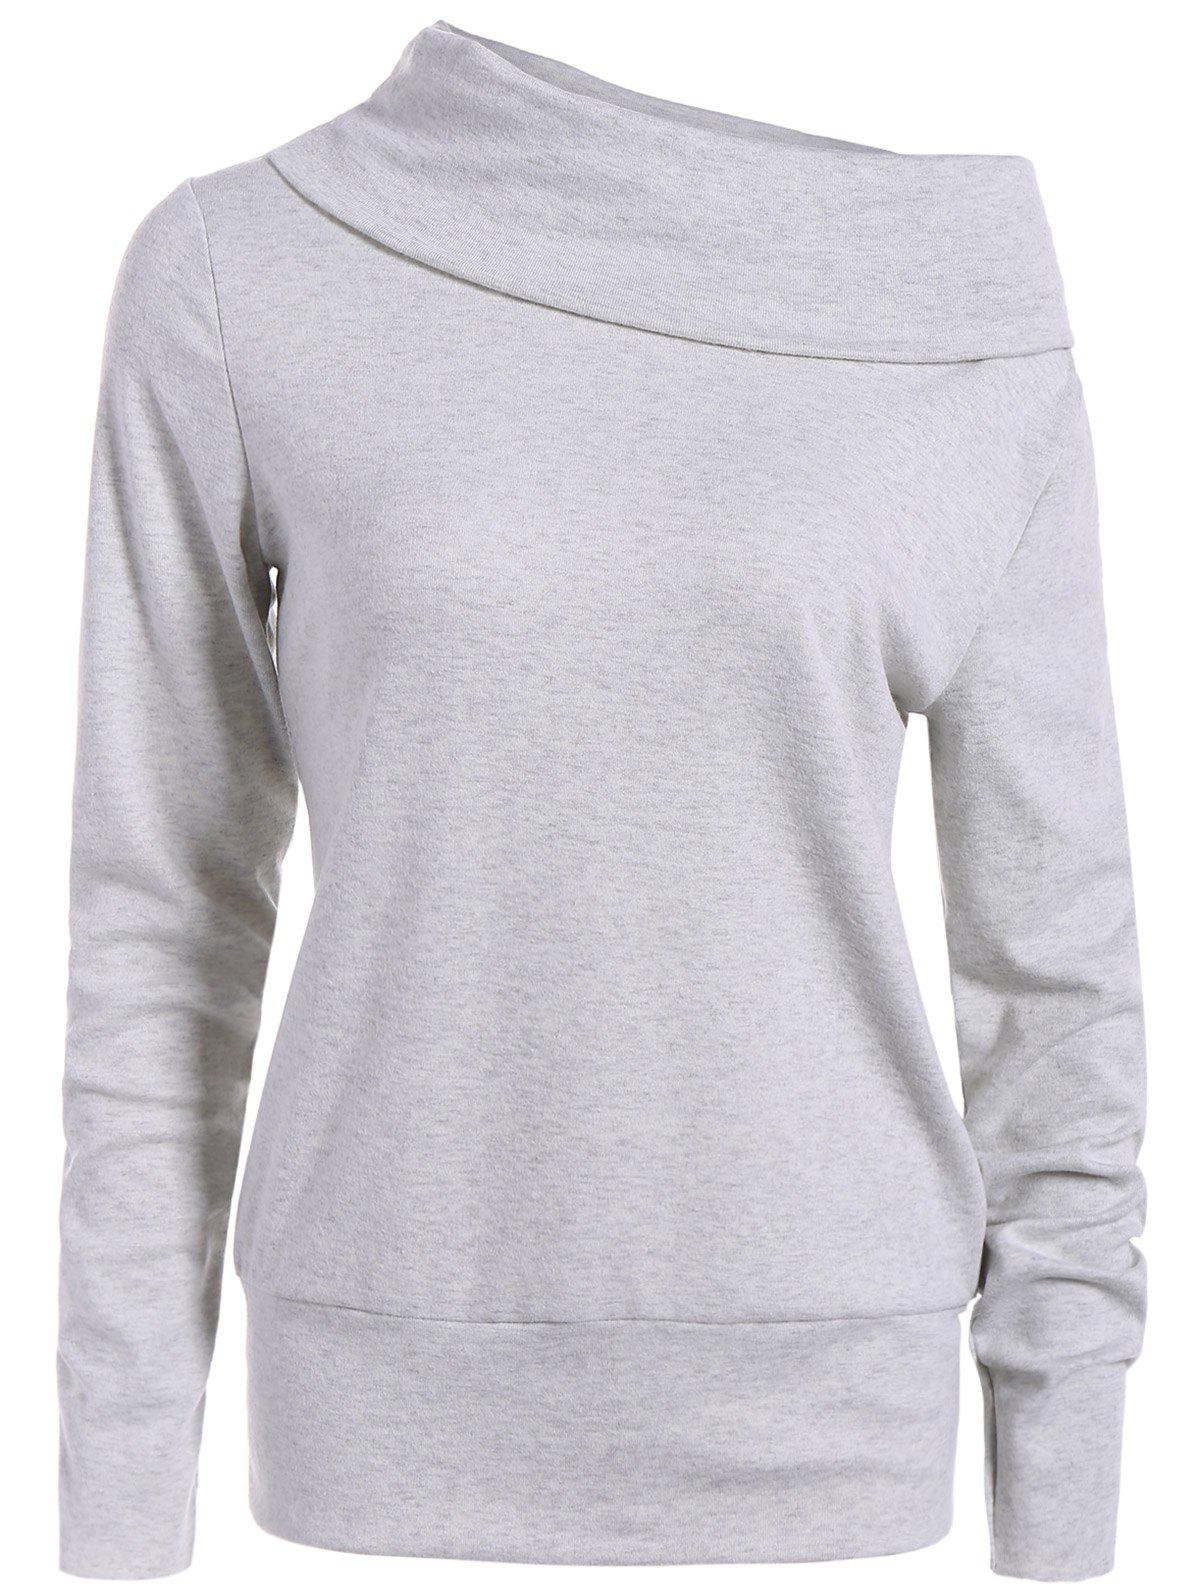 High Neck Long Sleeve Sweatshirt - LIGHT GRAY 2XL